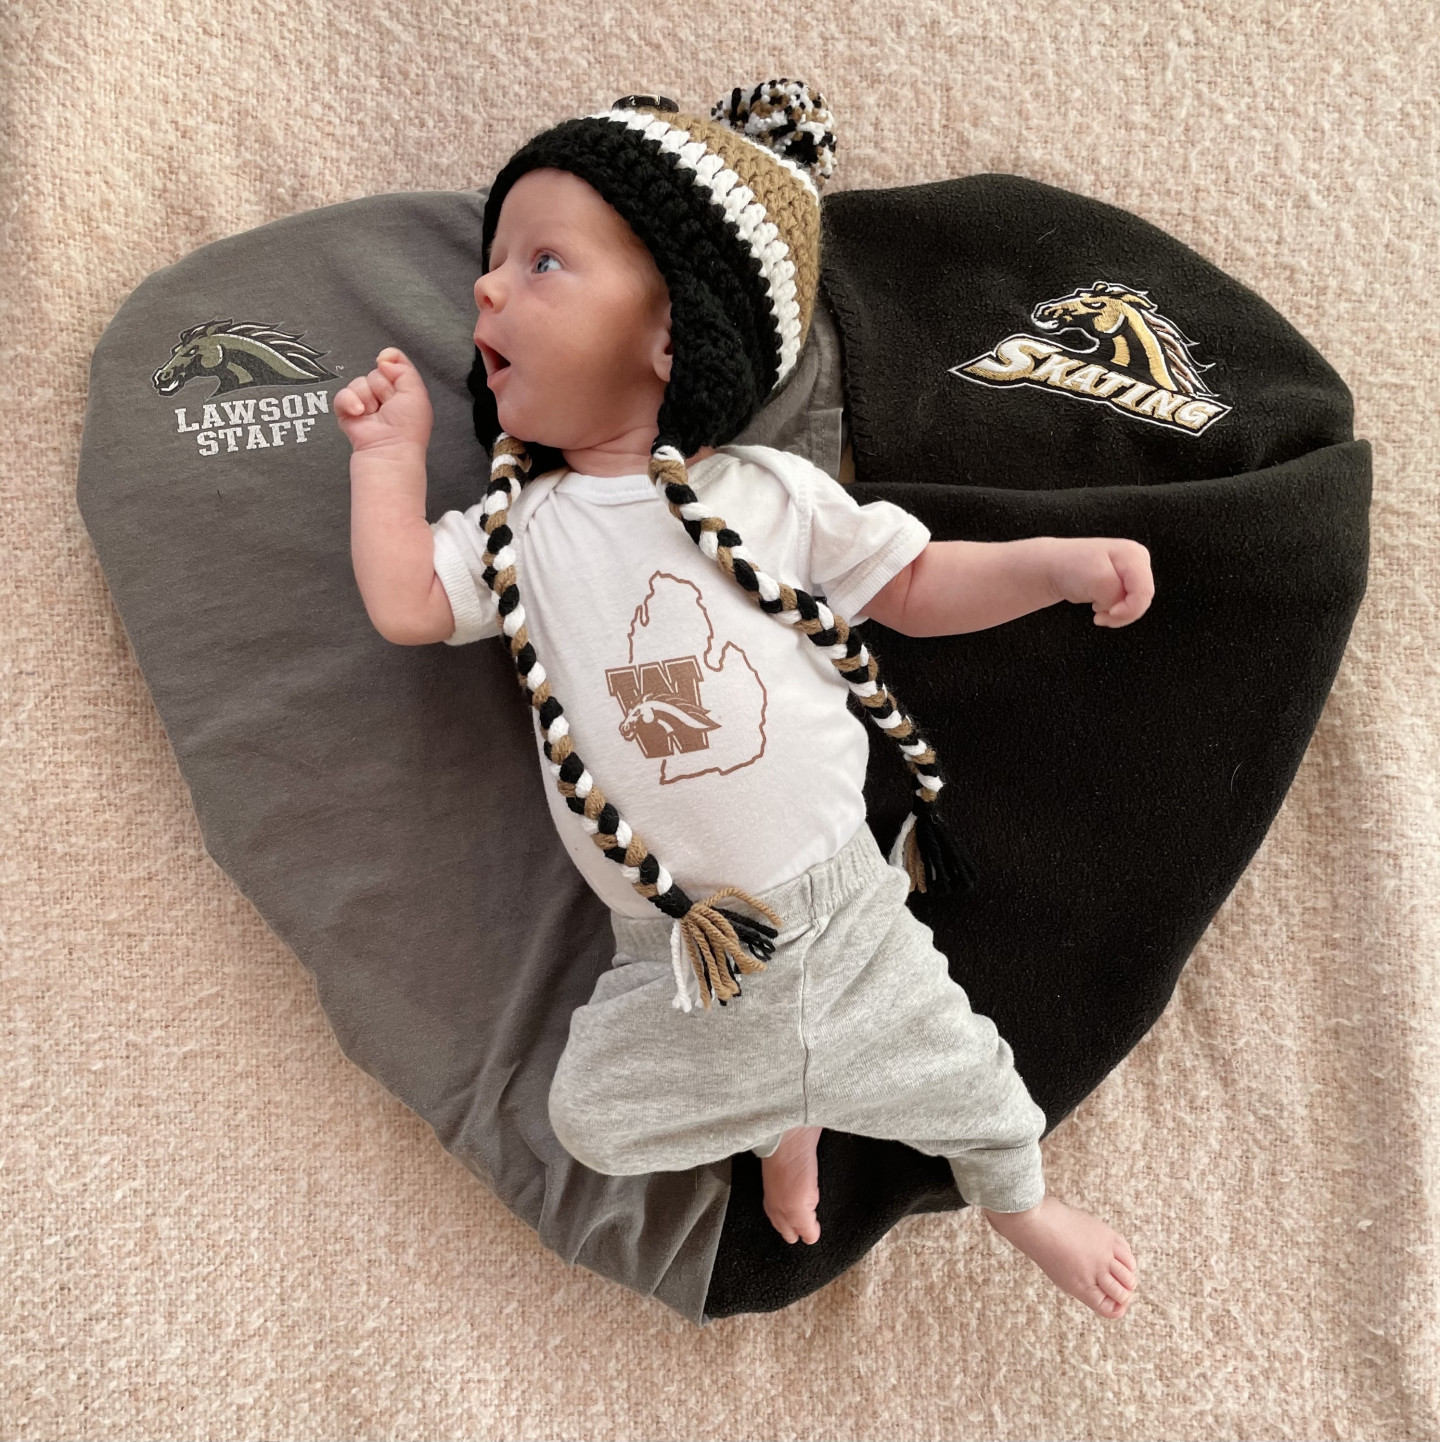 A baby lays on a heart made by two t-shirts.